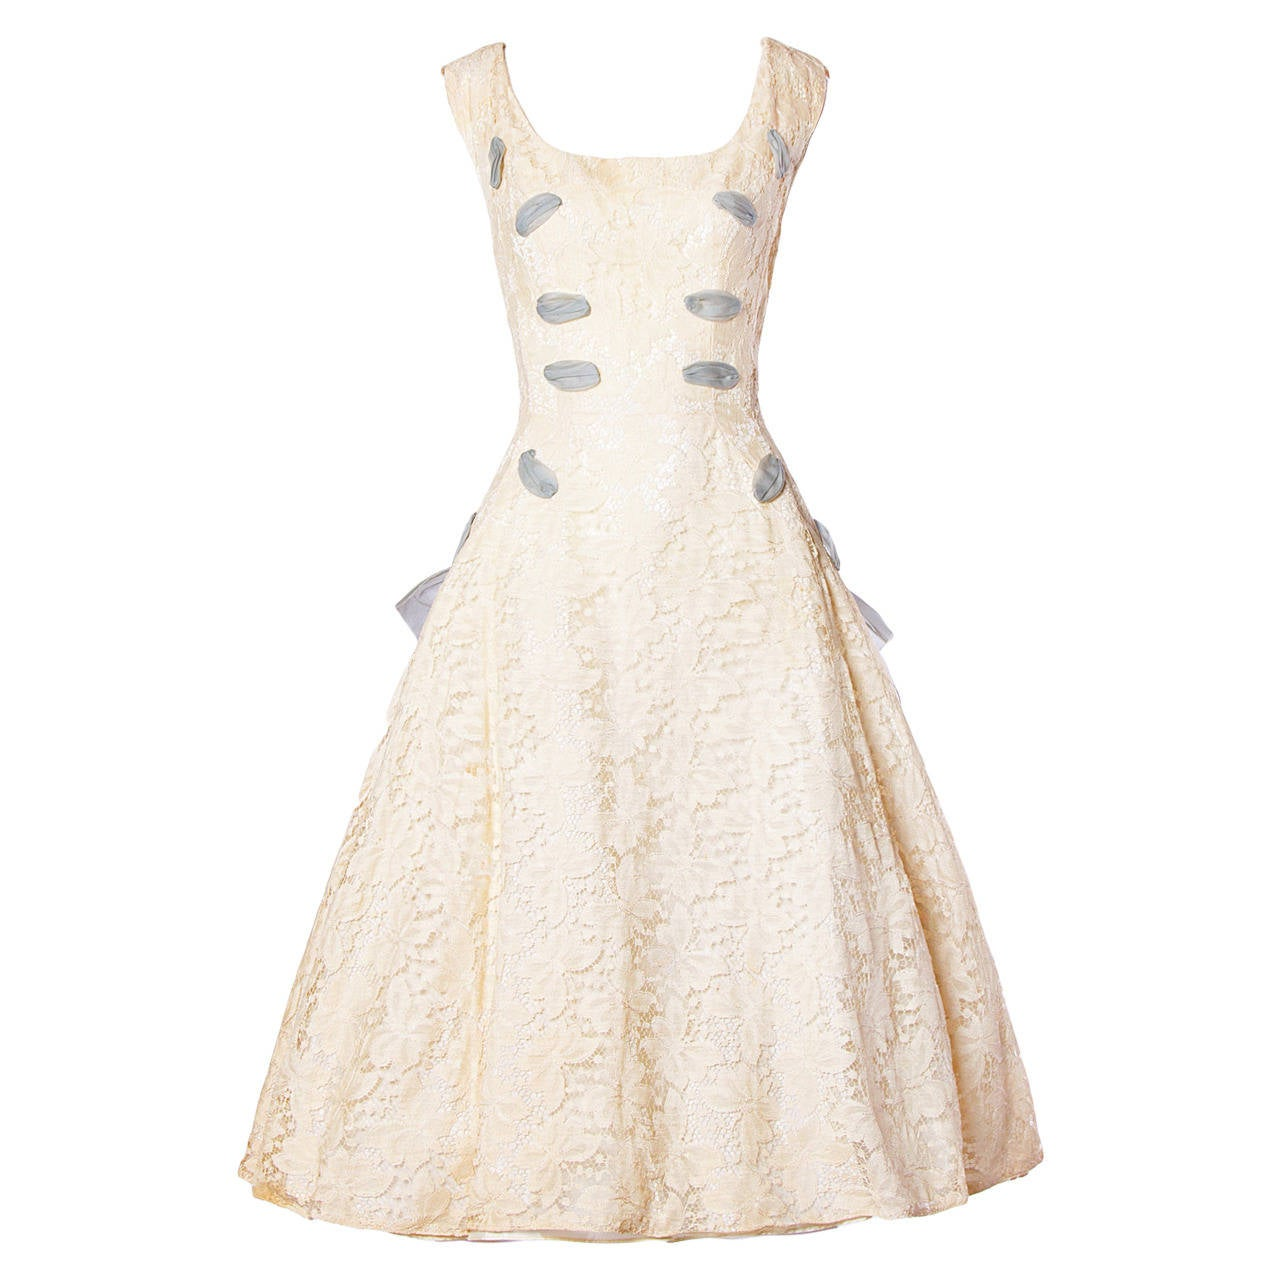 Vintage 1950s 50s Cream Lace Party Dress with Organza Lace Up Ribbon 1